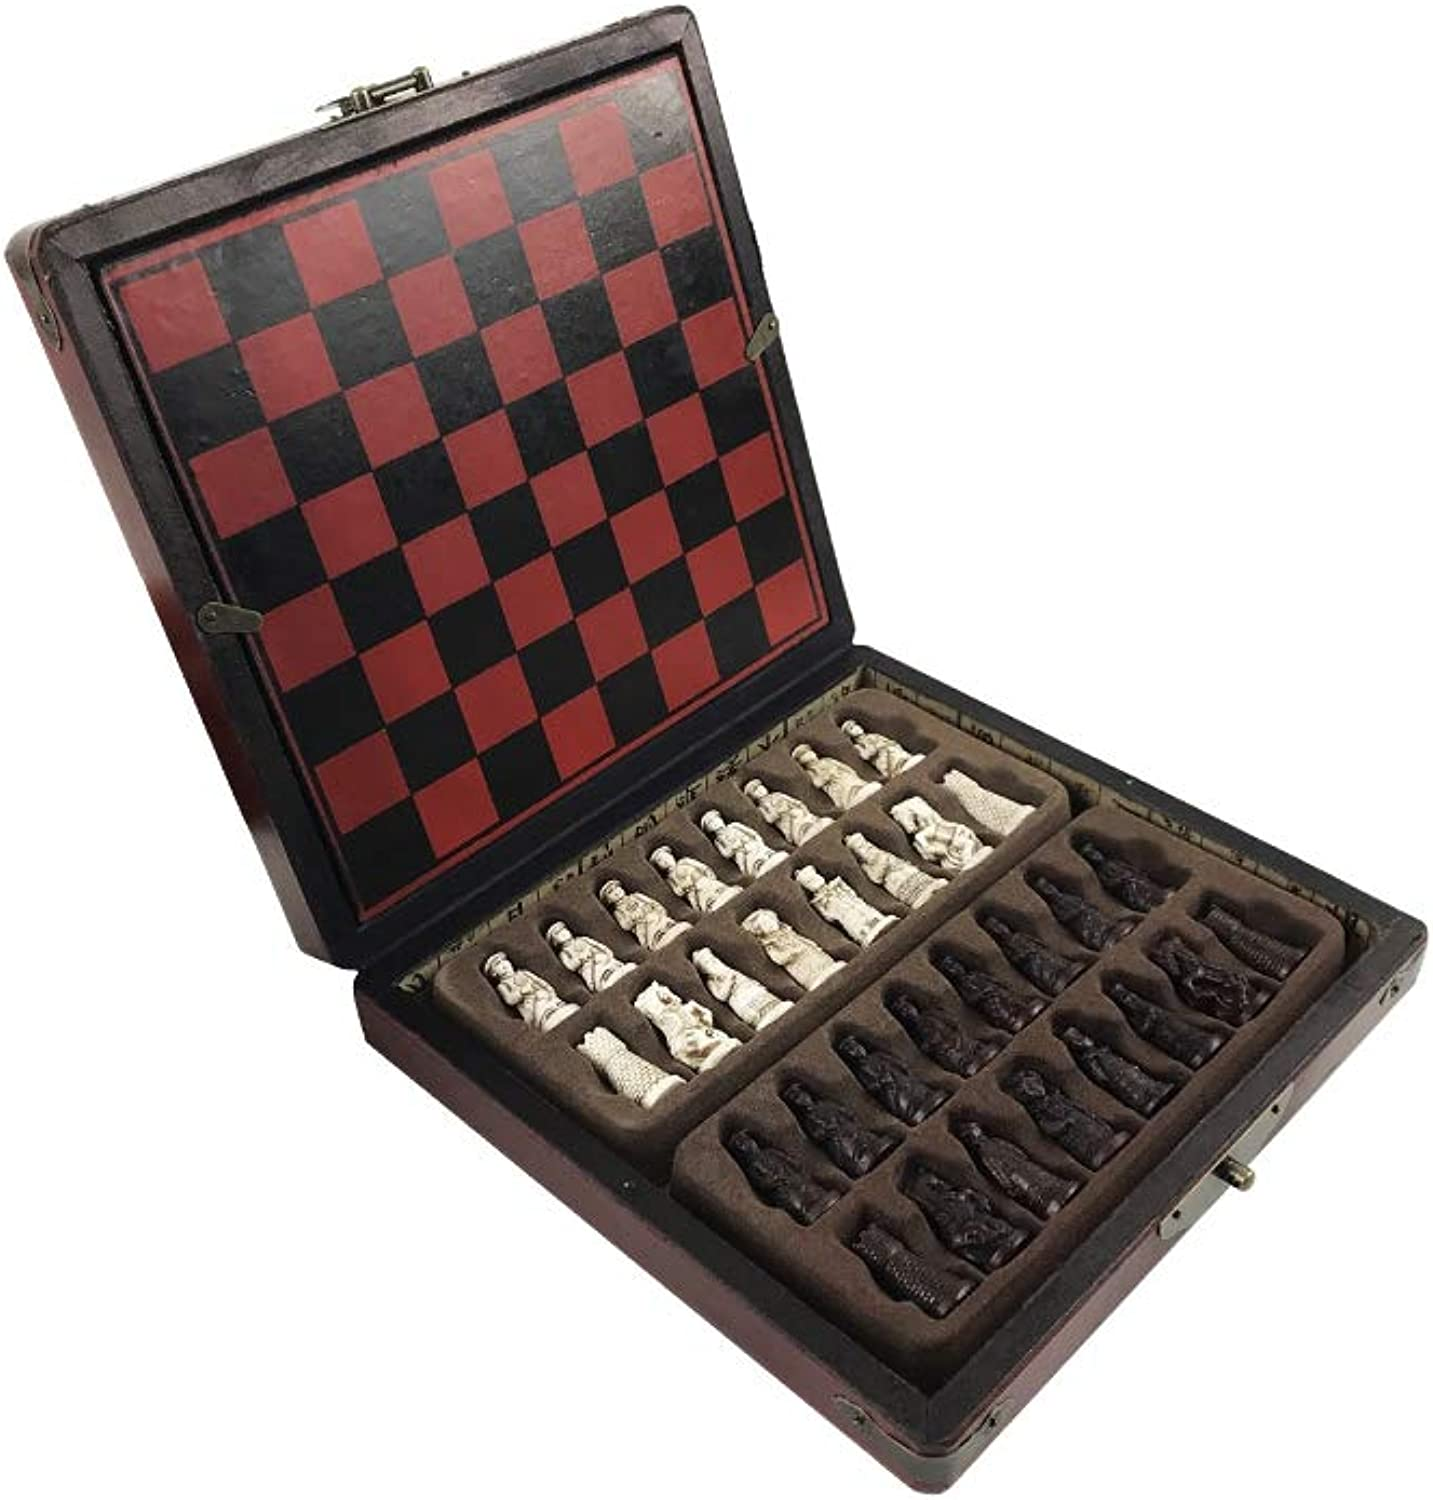 ZEYUGTIW Chess Set of Chess Wooden Coffee Table Antique Miniature Chess Board Chess Pieces Move Box Set Retro Style Lifelike